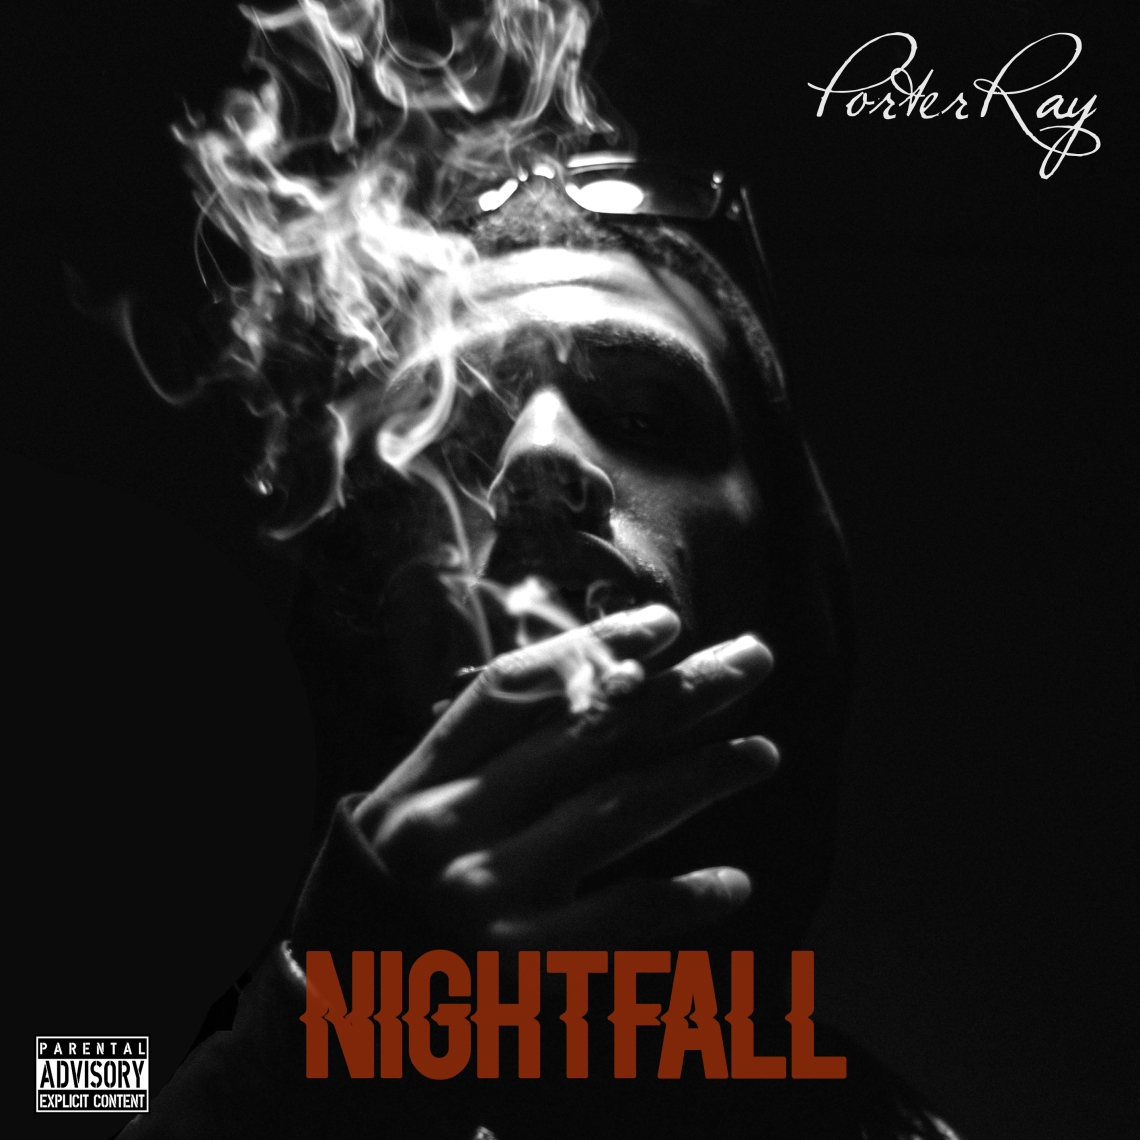 Porter Ray - Nightfall